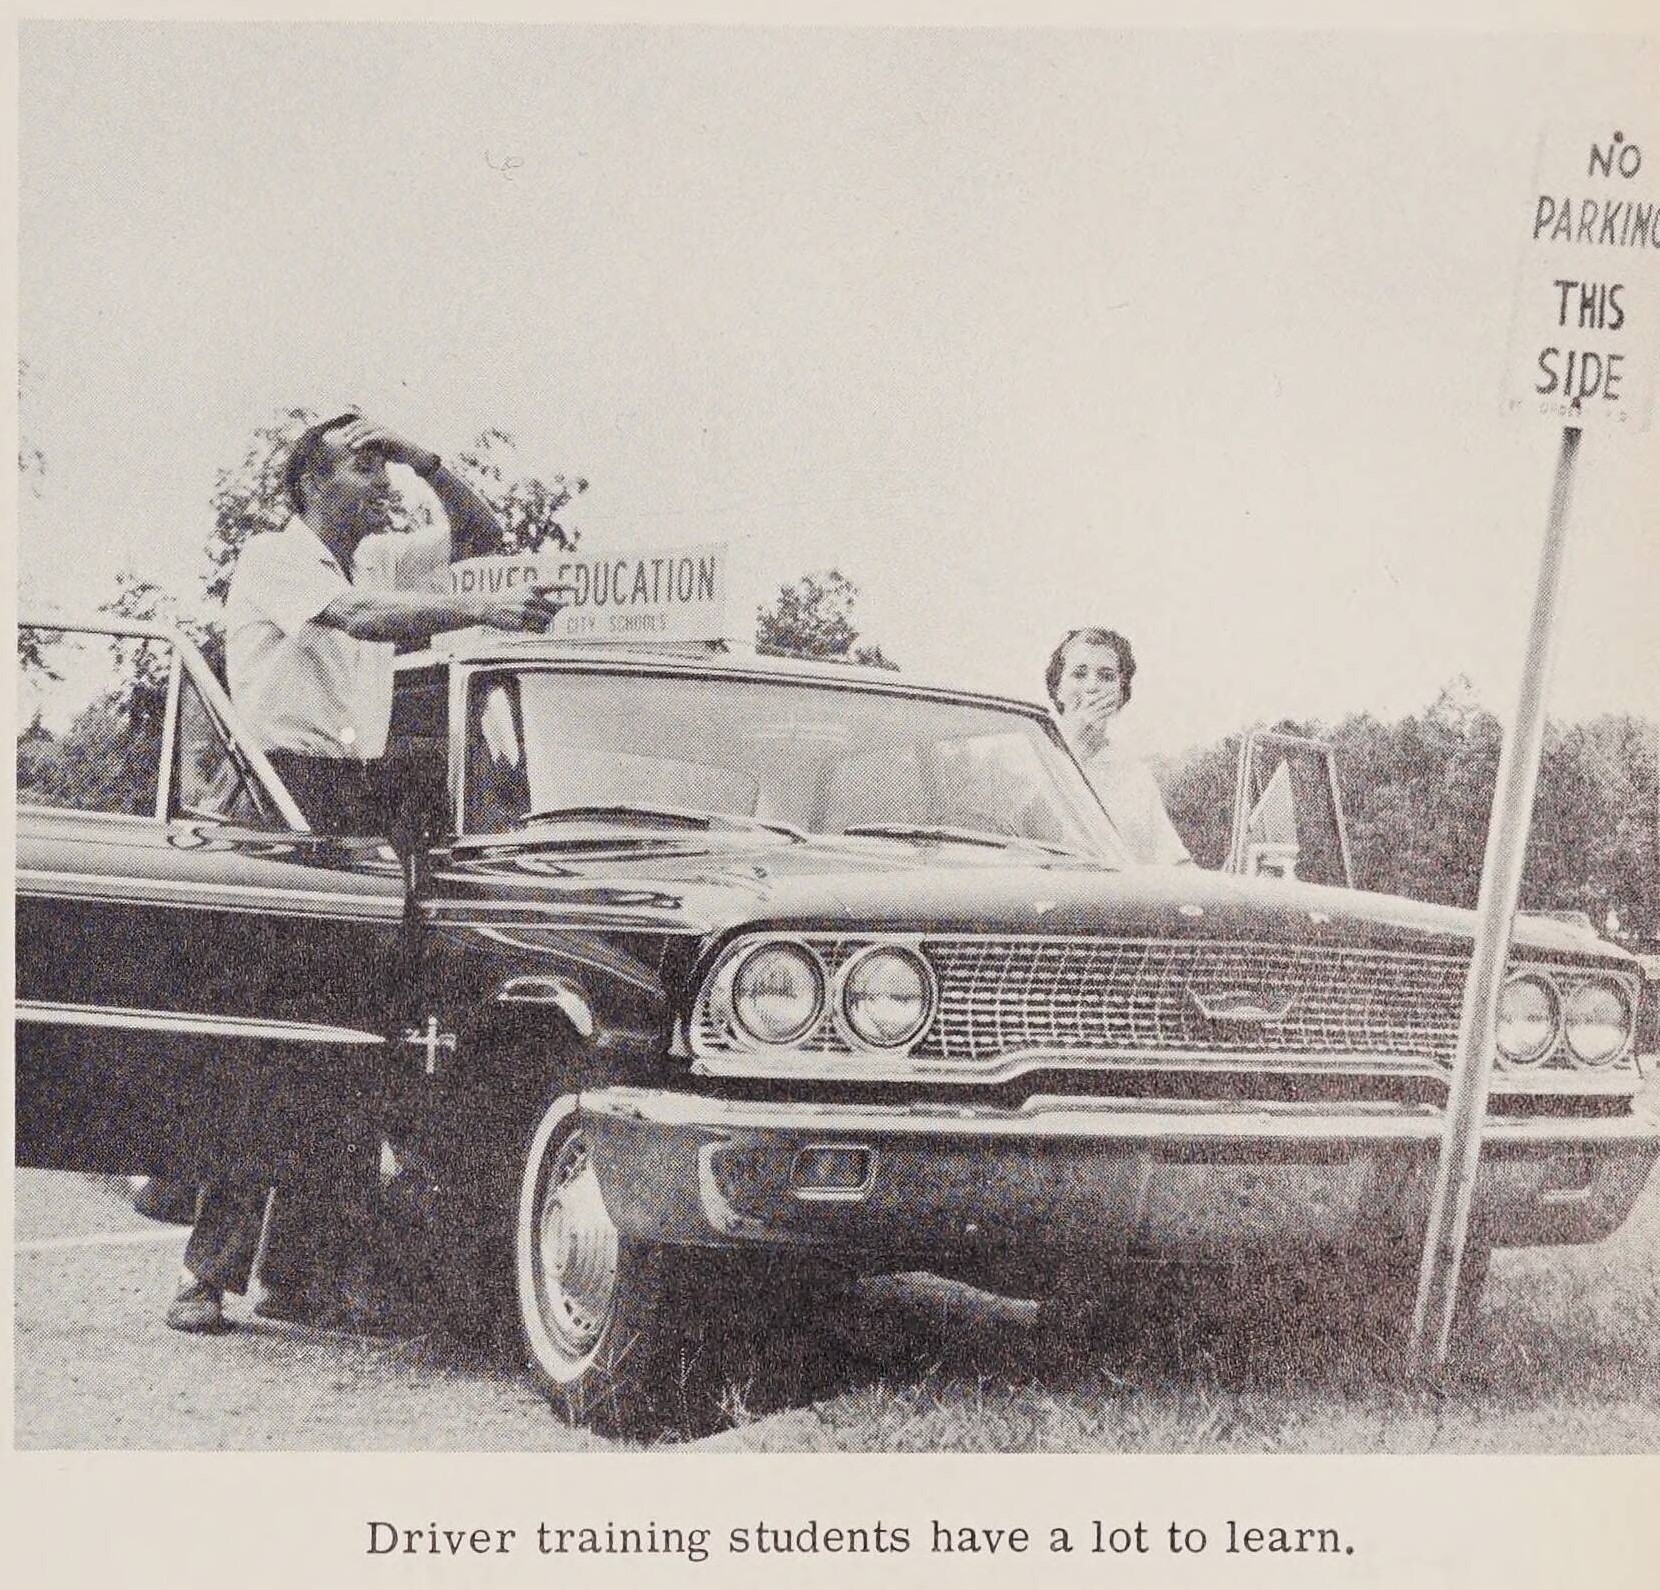 """Two individuals standing at the doors of a driver education car. The car is posed to look like it has hit a sign. The caption on the image reads """"Driver training students have a lot to learn."""""""